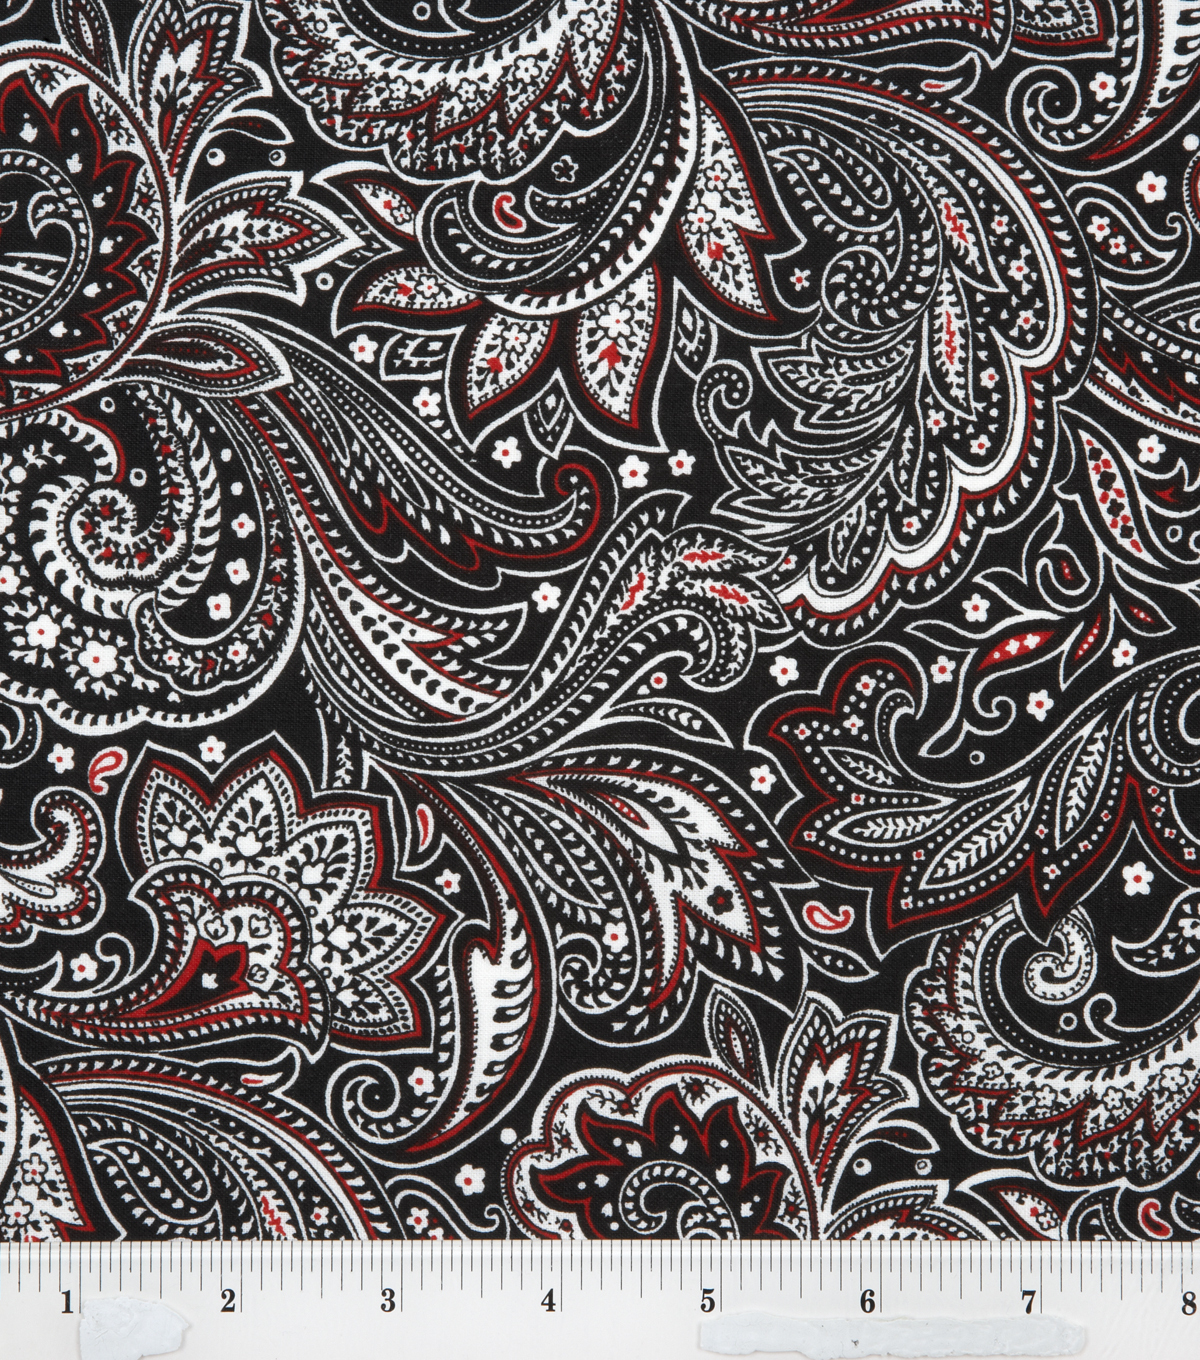 Keepsake Calico Fabric Paisley Black White Red Joann